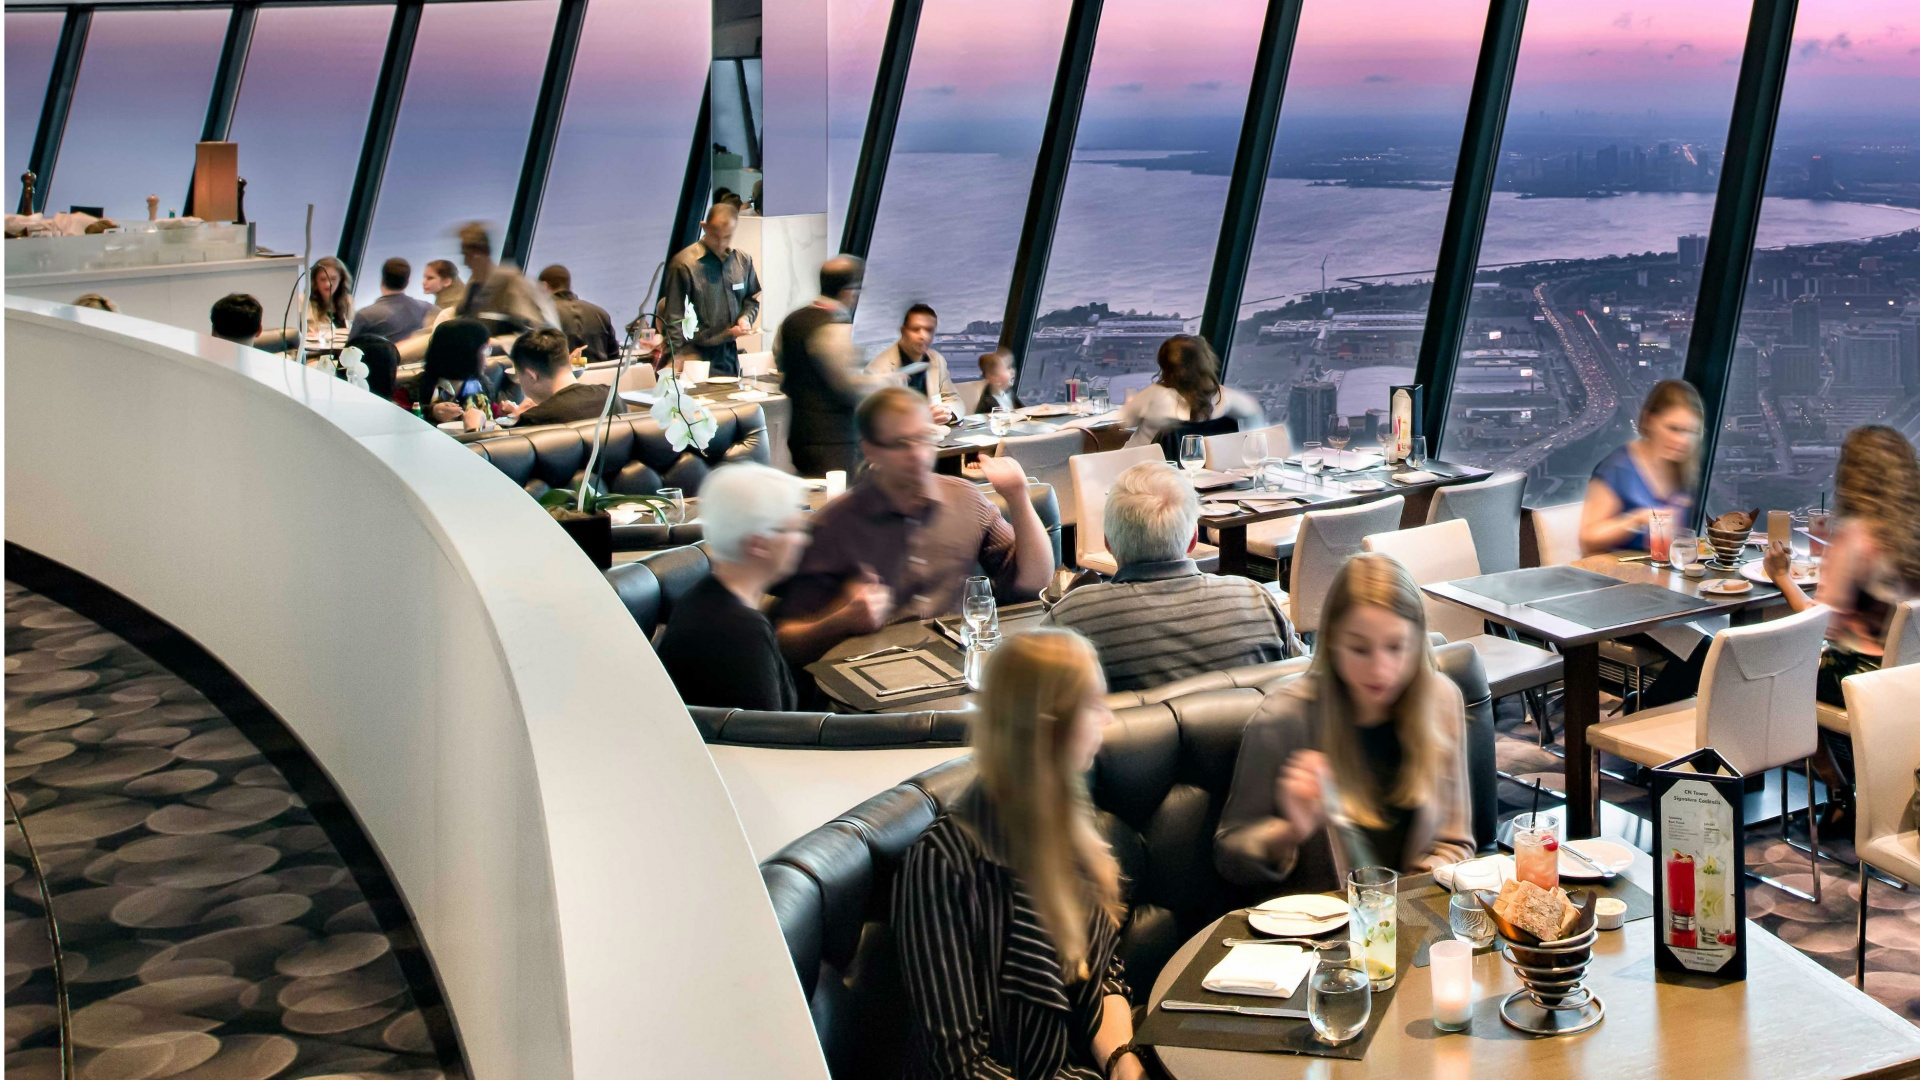 Win a Dinner for Two at CN Tower's 360 Restaurant